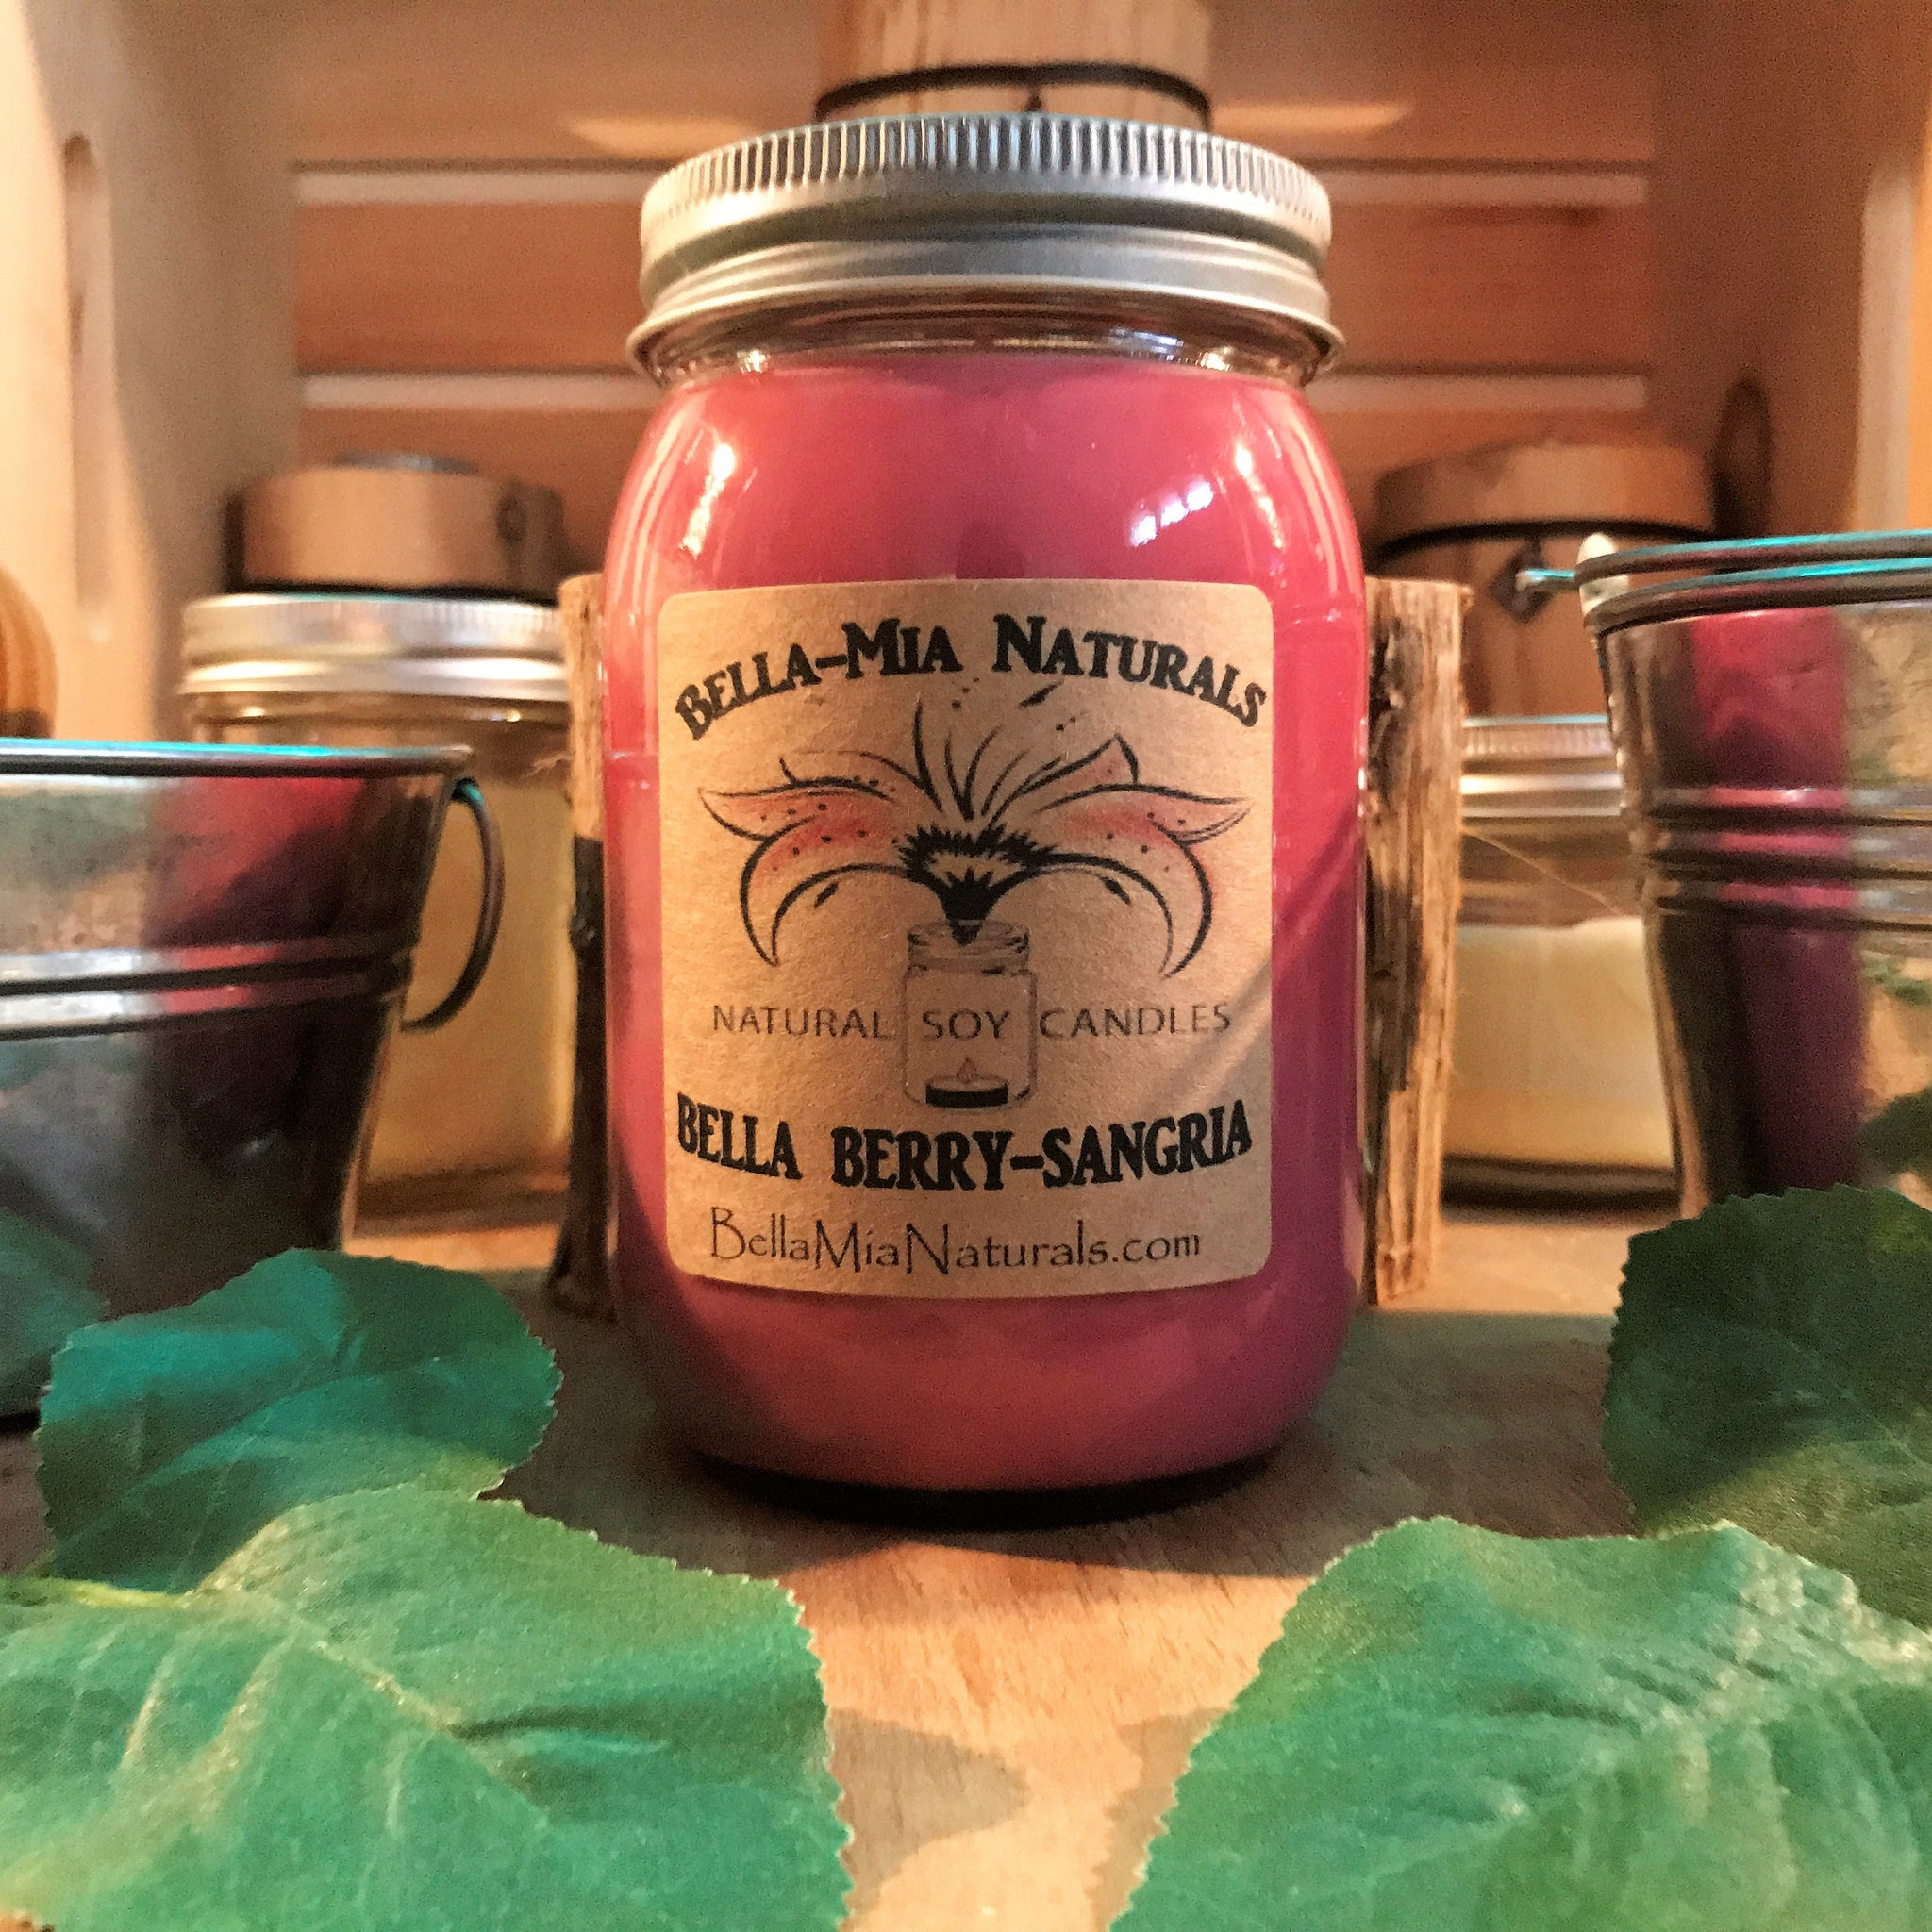 Bella Berry-Sangria Natural Hand Poured Soy Candles